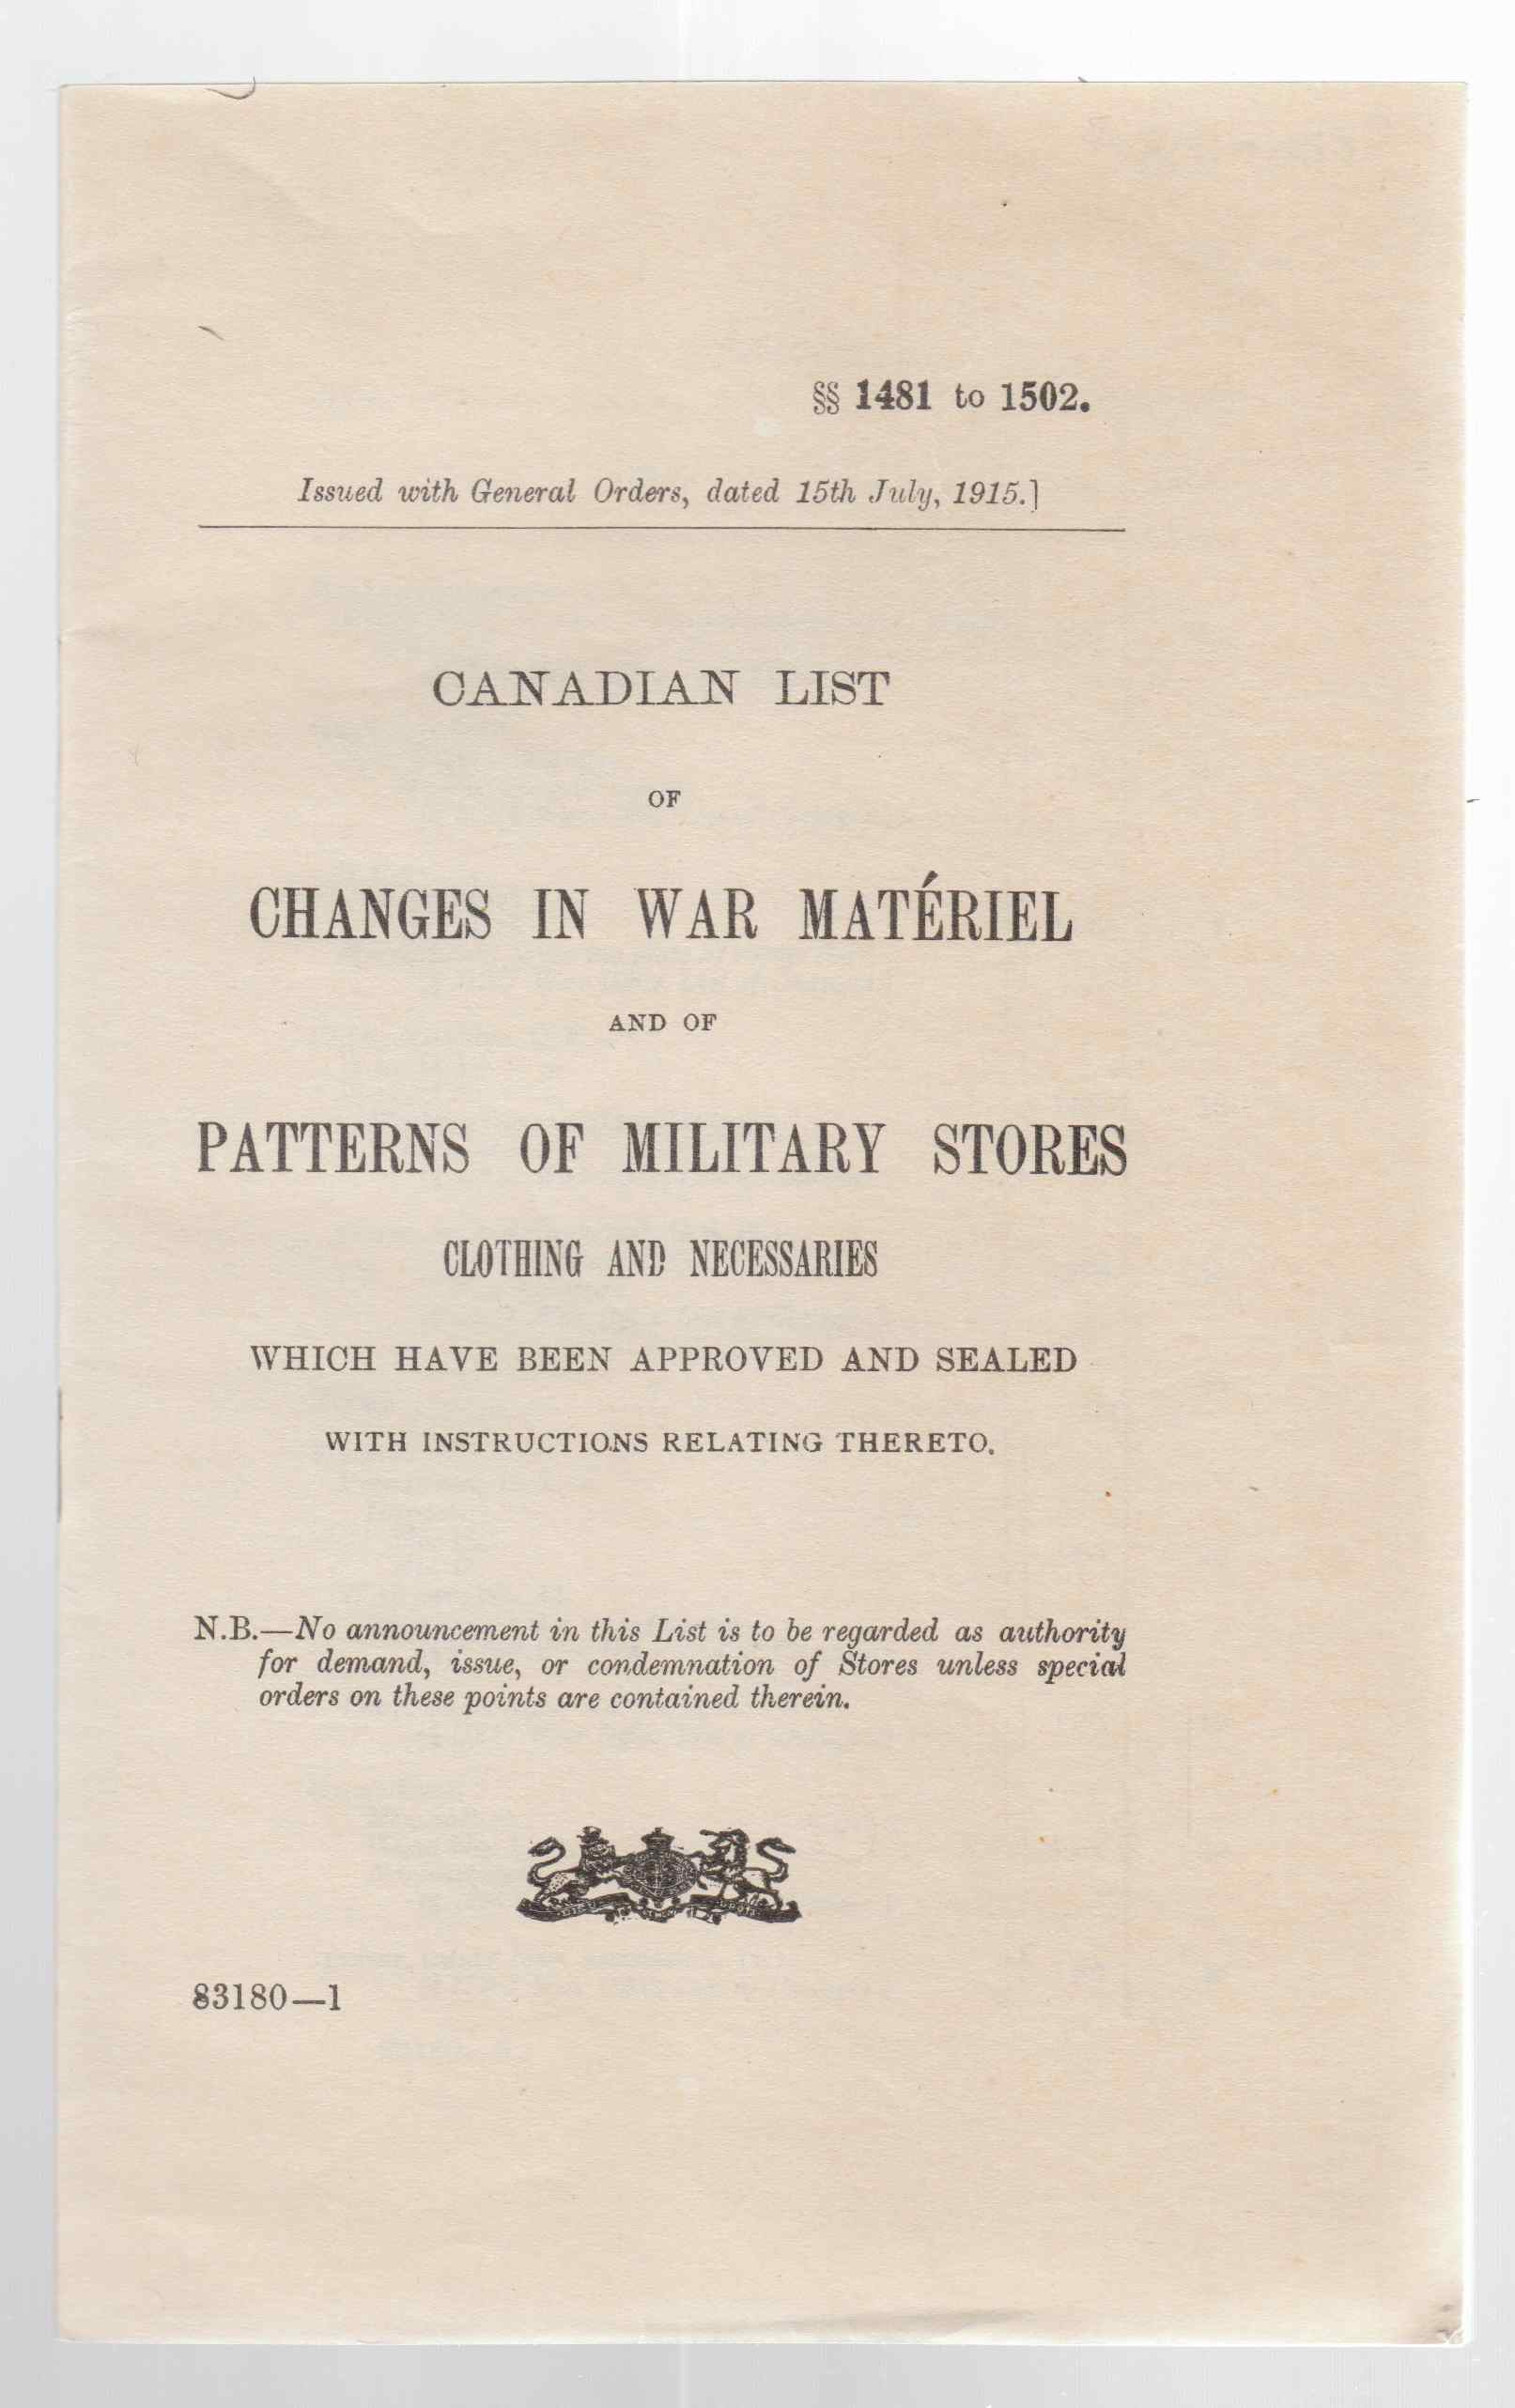 Image for Canadian List of Changes in War Materiel and of Patterns of Military Stores Clothing and Necessaries Which Have Been Approved and Sealed with Instructions Hereto